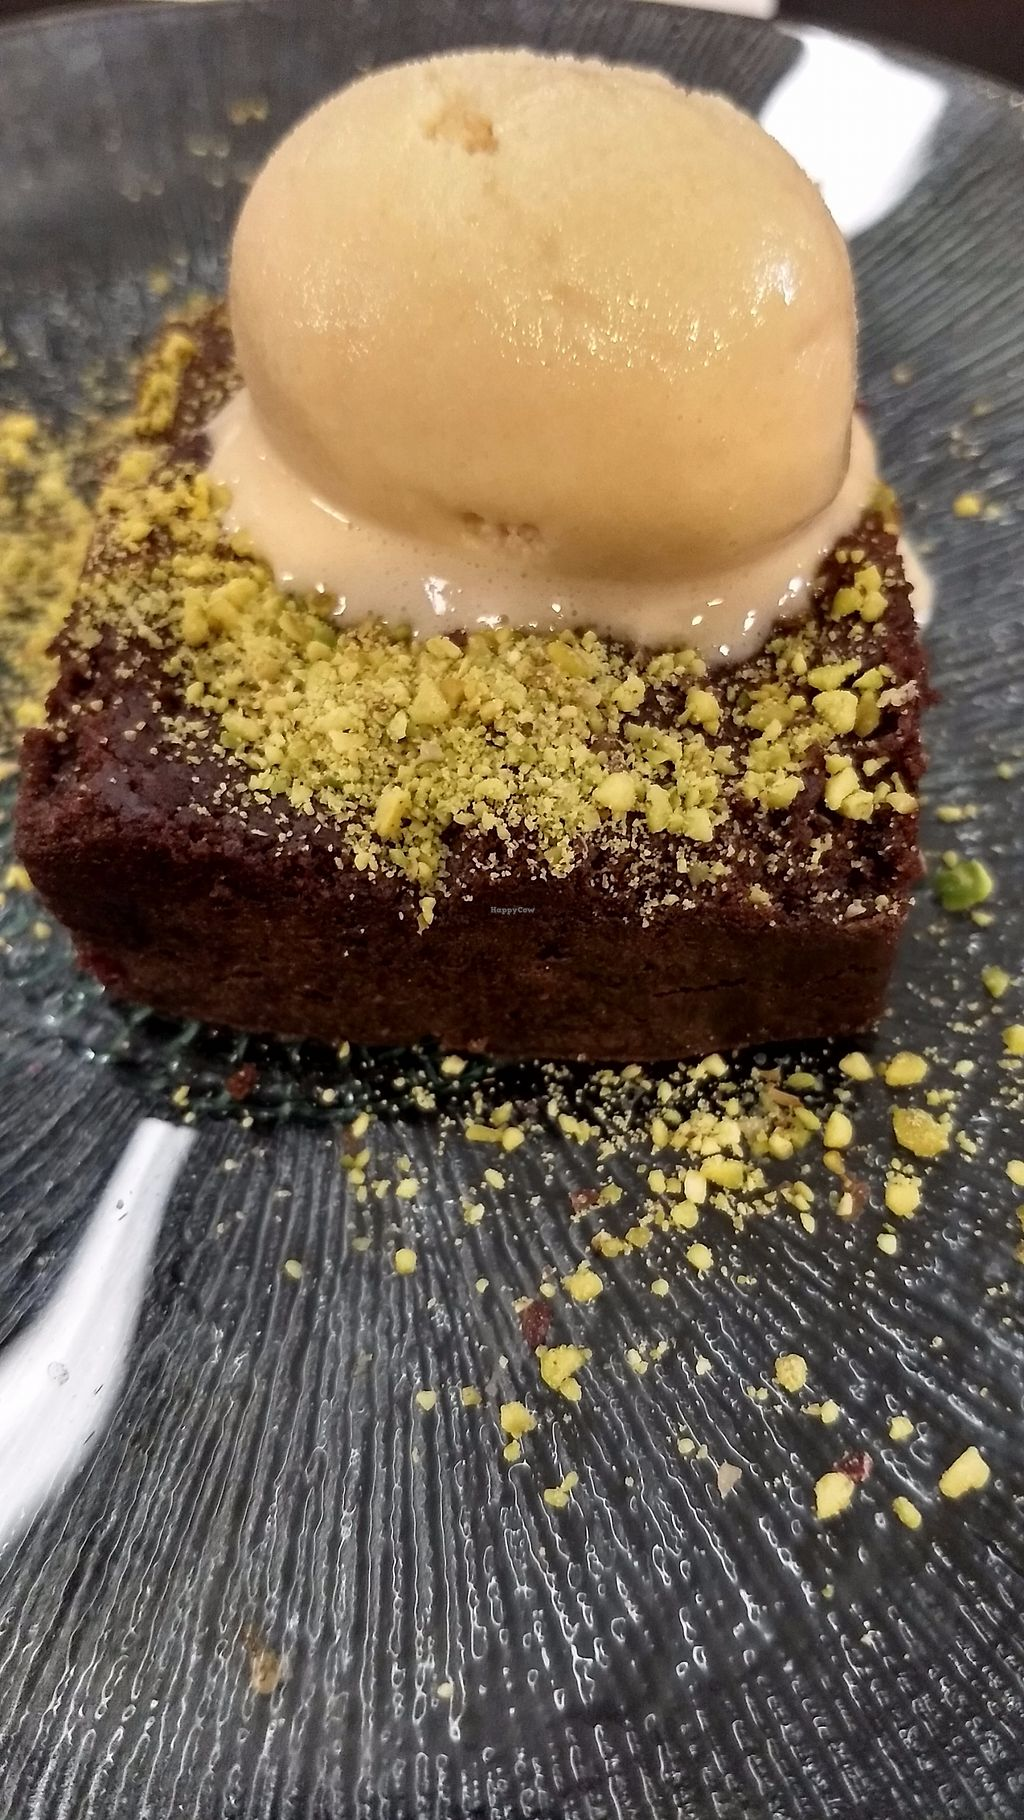 """Photo of Malmo  by <a href=""""/members/profile/mostlyvegan75"""">mostlyvegan75</a> <br/>Brownie + Macadamia ice cream <br/> September 22, 2017  - <a href='/contact/abuse/image/42169/307053'>Report</a>"""